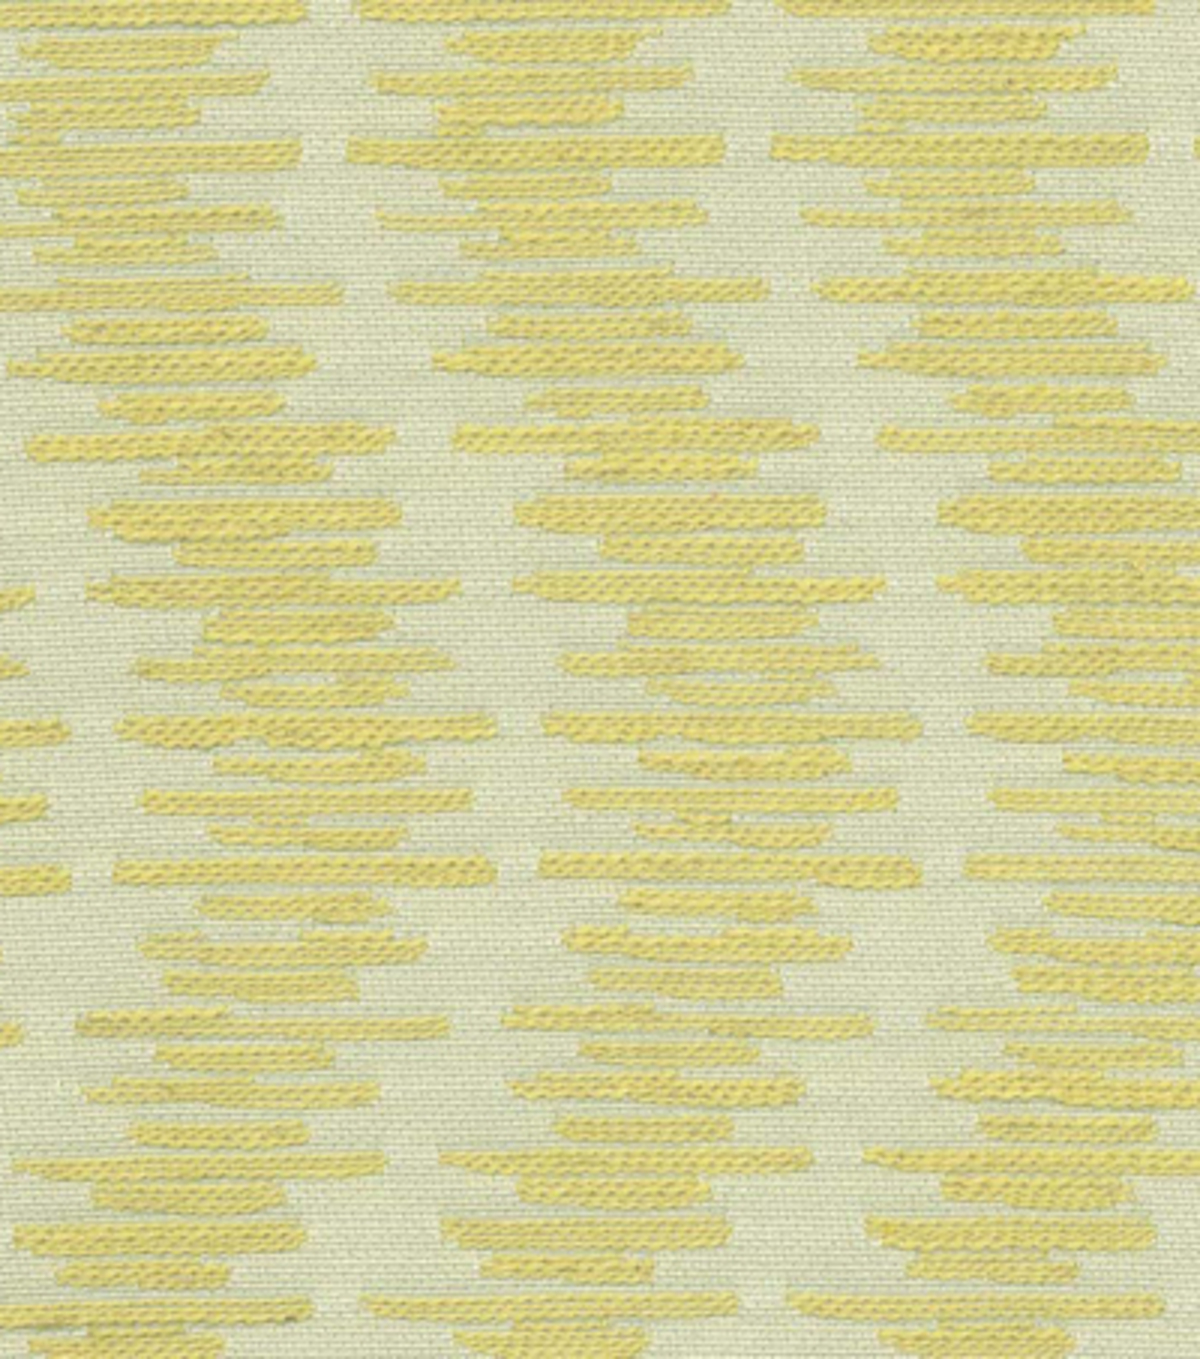 HGTV Home Upholstery Fabric-Wavering/Citrine